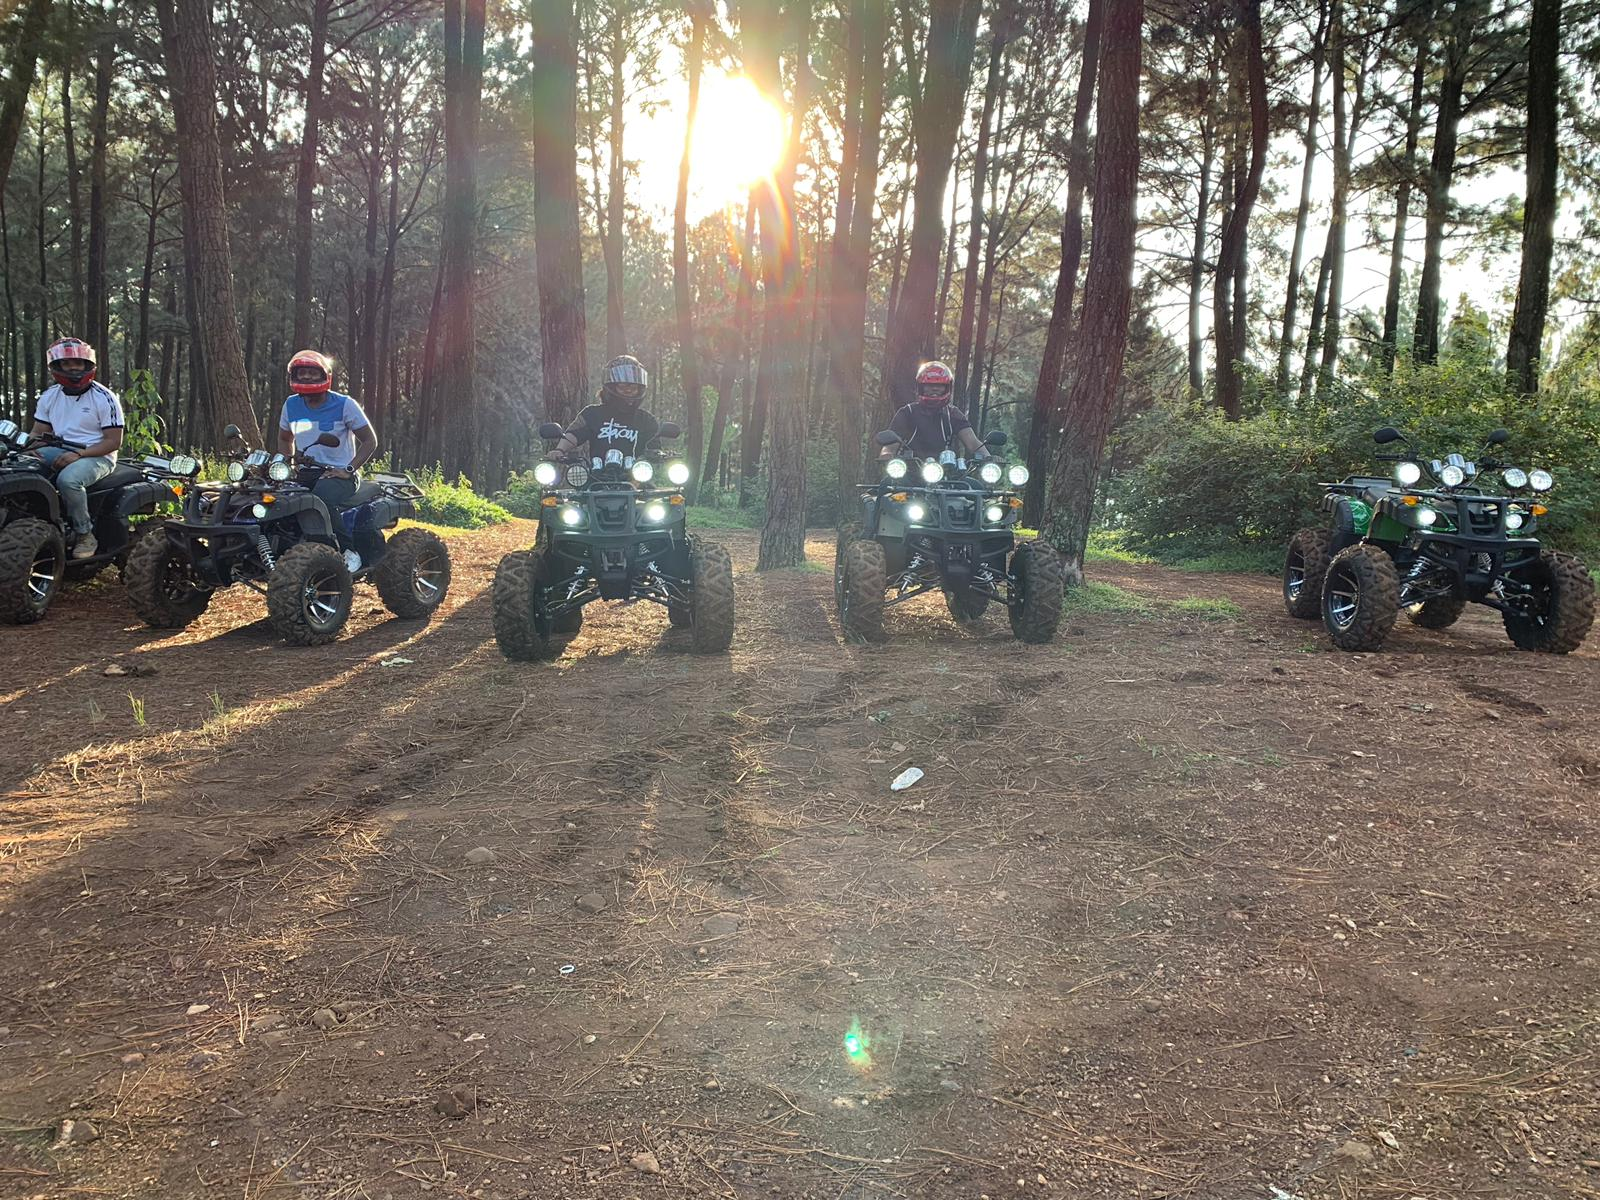 The thrill of quad biking